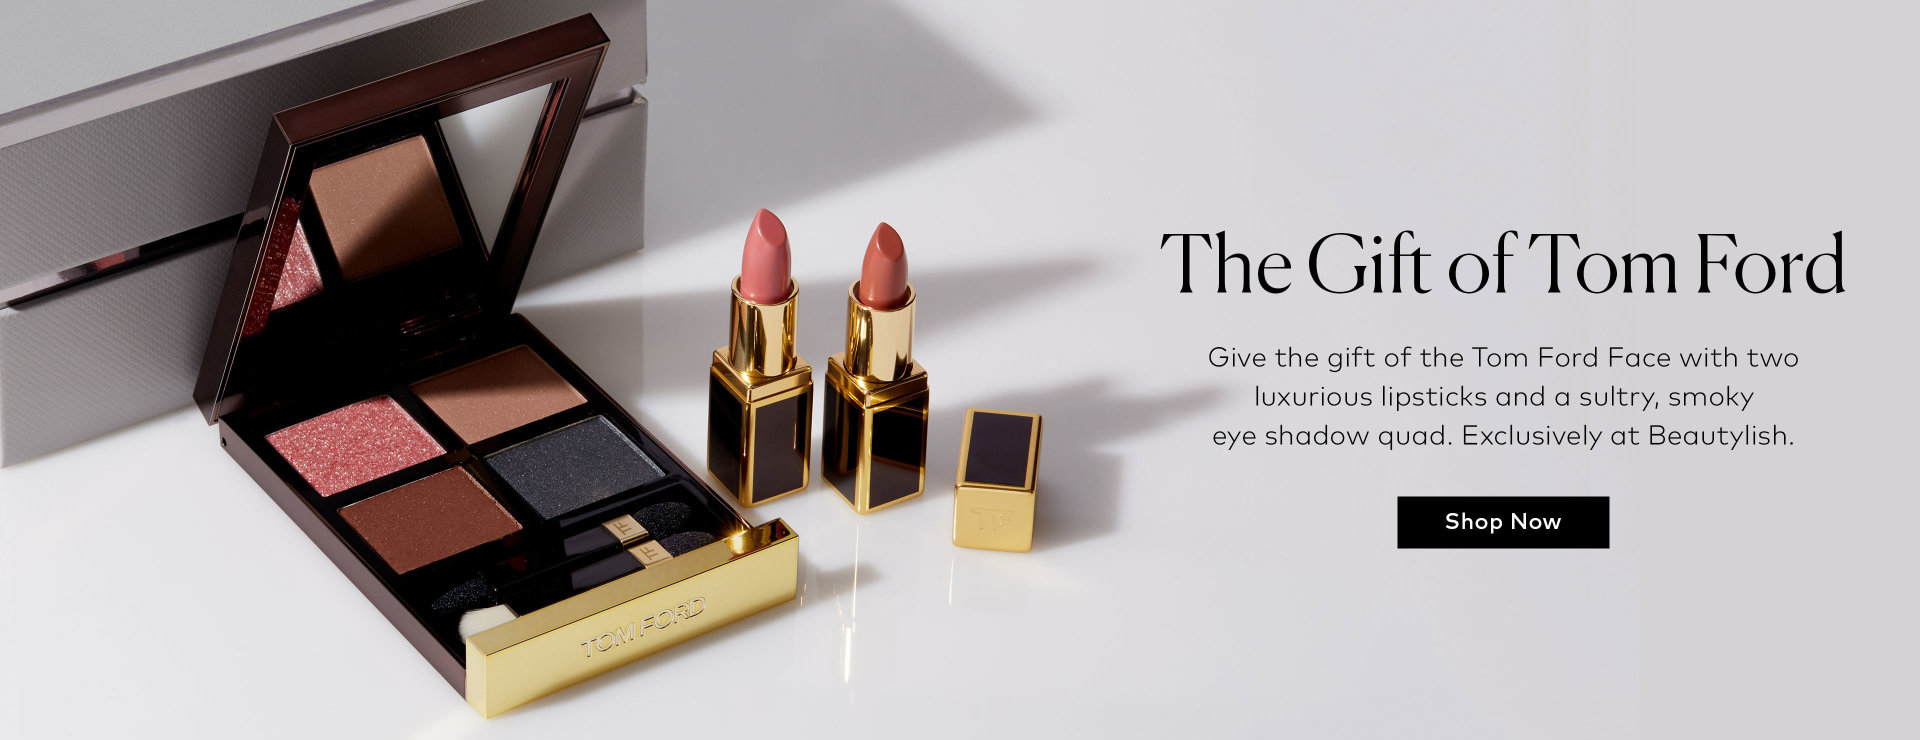 Shop the exclusive TOM FORD Collection Eye Quad & Deluxe Lip Set on Beautylish.com